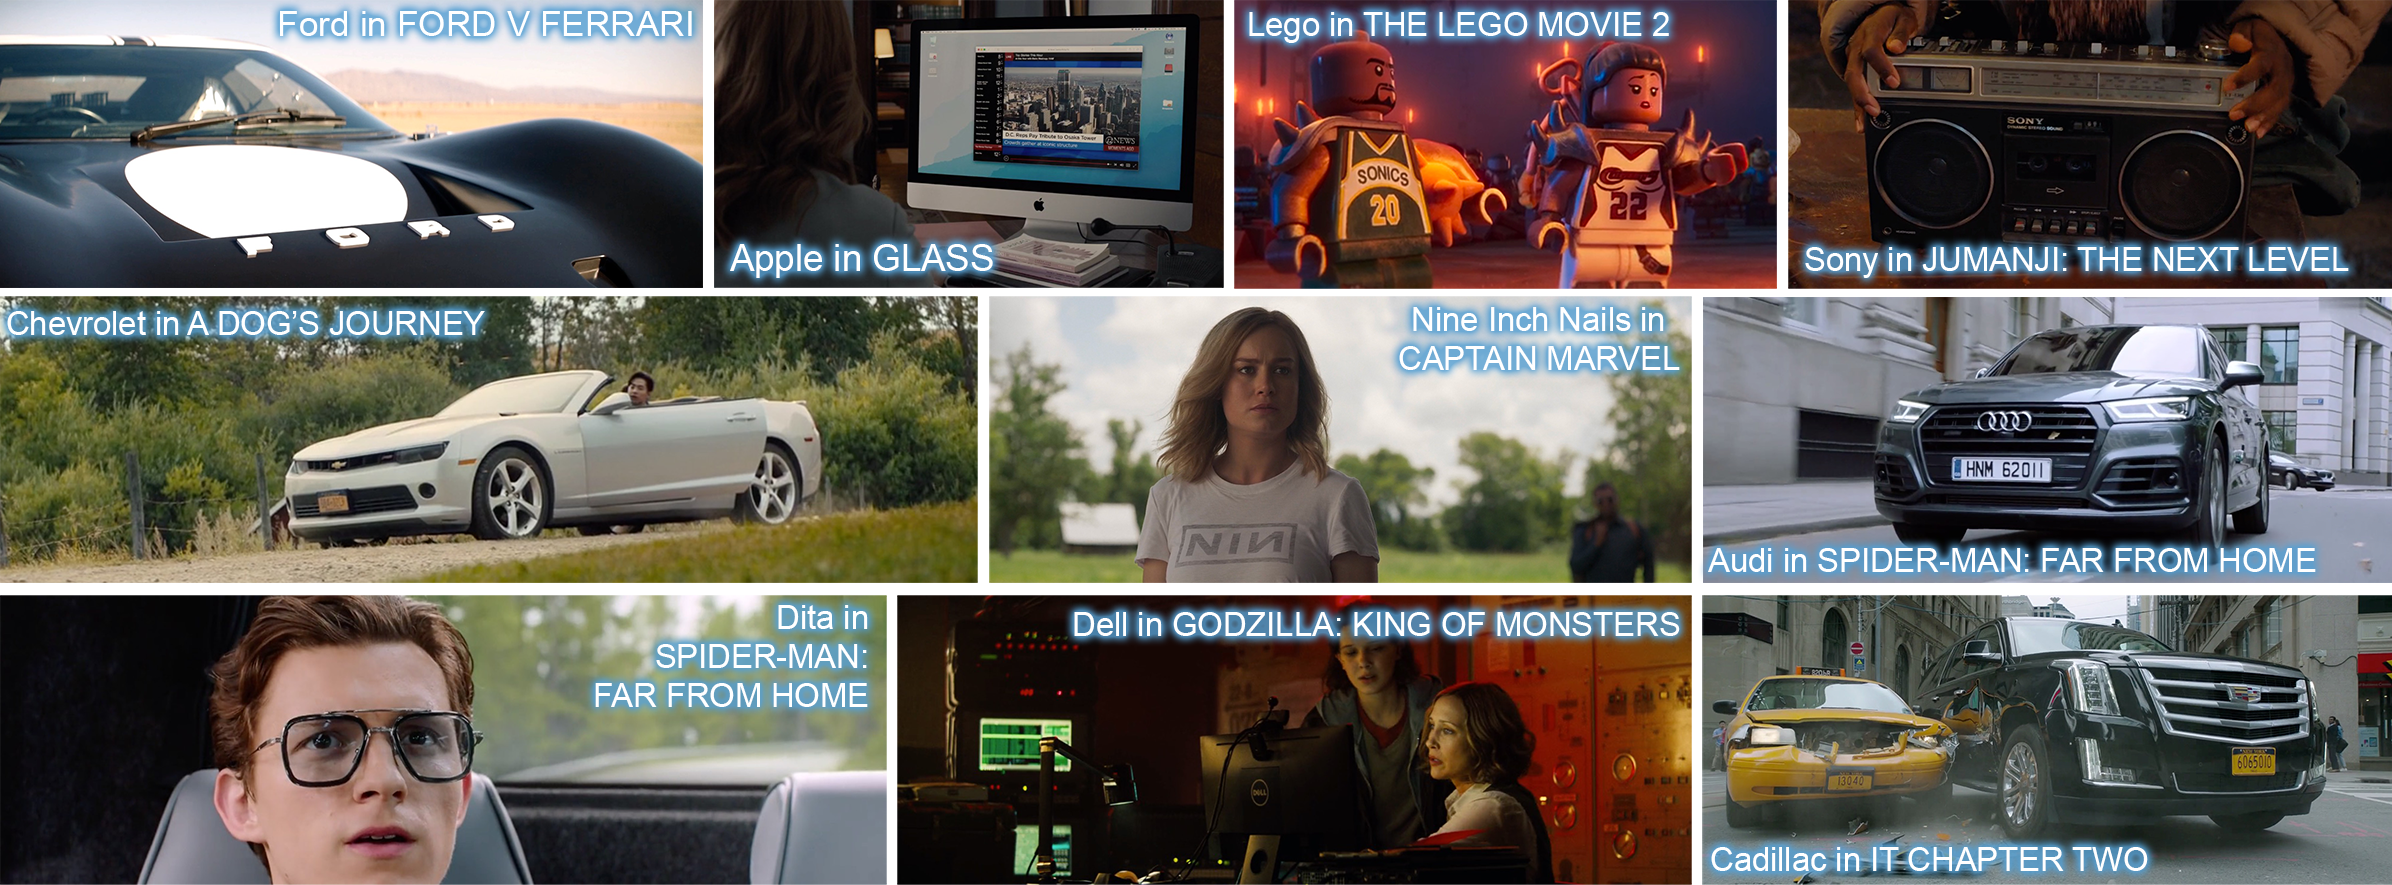 concave brand tracking, product placement, top 100 brands in 2019 movies, top 10, entertainment marketing ,analysis metrics measurement, ford ,ford v ferrari, apple in glass, lego ,the lego movie 2, Sony, Jumanji the next level, chevrolet a dog's journey nine inch nails ,Captain marvel, audi, spiderman spider-man ,far from home dita dell in Godzilla king of monsters, cadillac in IT chapter two